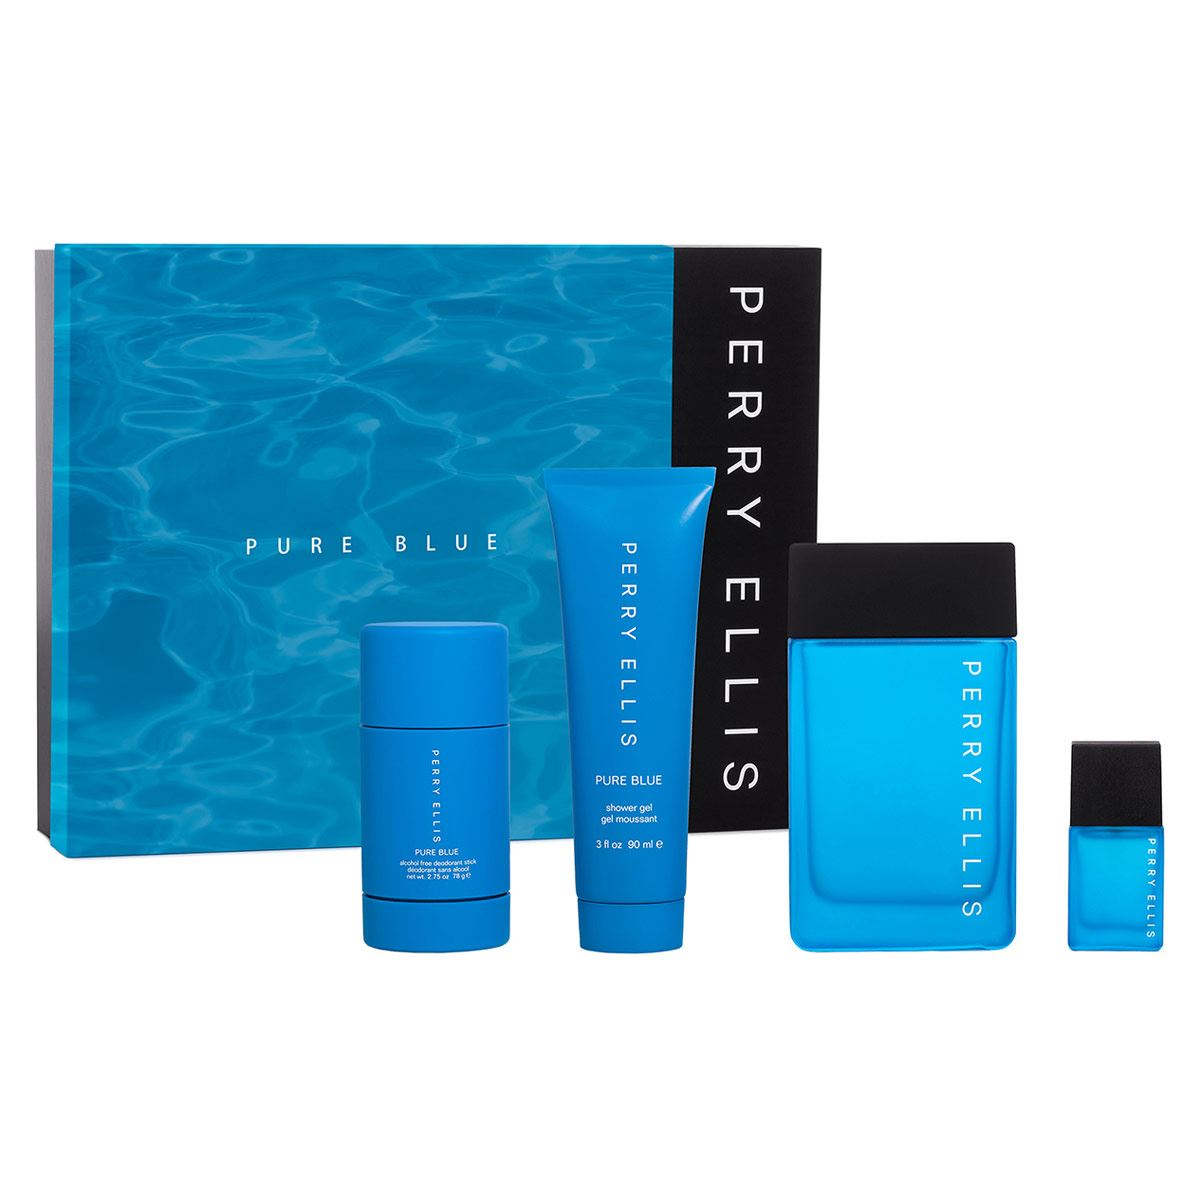 Set para Caballero, Perry Ellis,  Pure Blue EDT  (4 piezas) EDT 100ml + Shower Gel 90ml + Desodorante 78g + Mini 7.5 ml